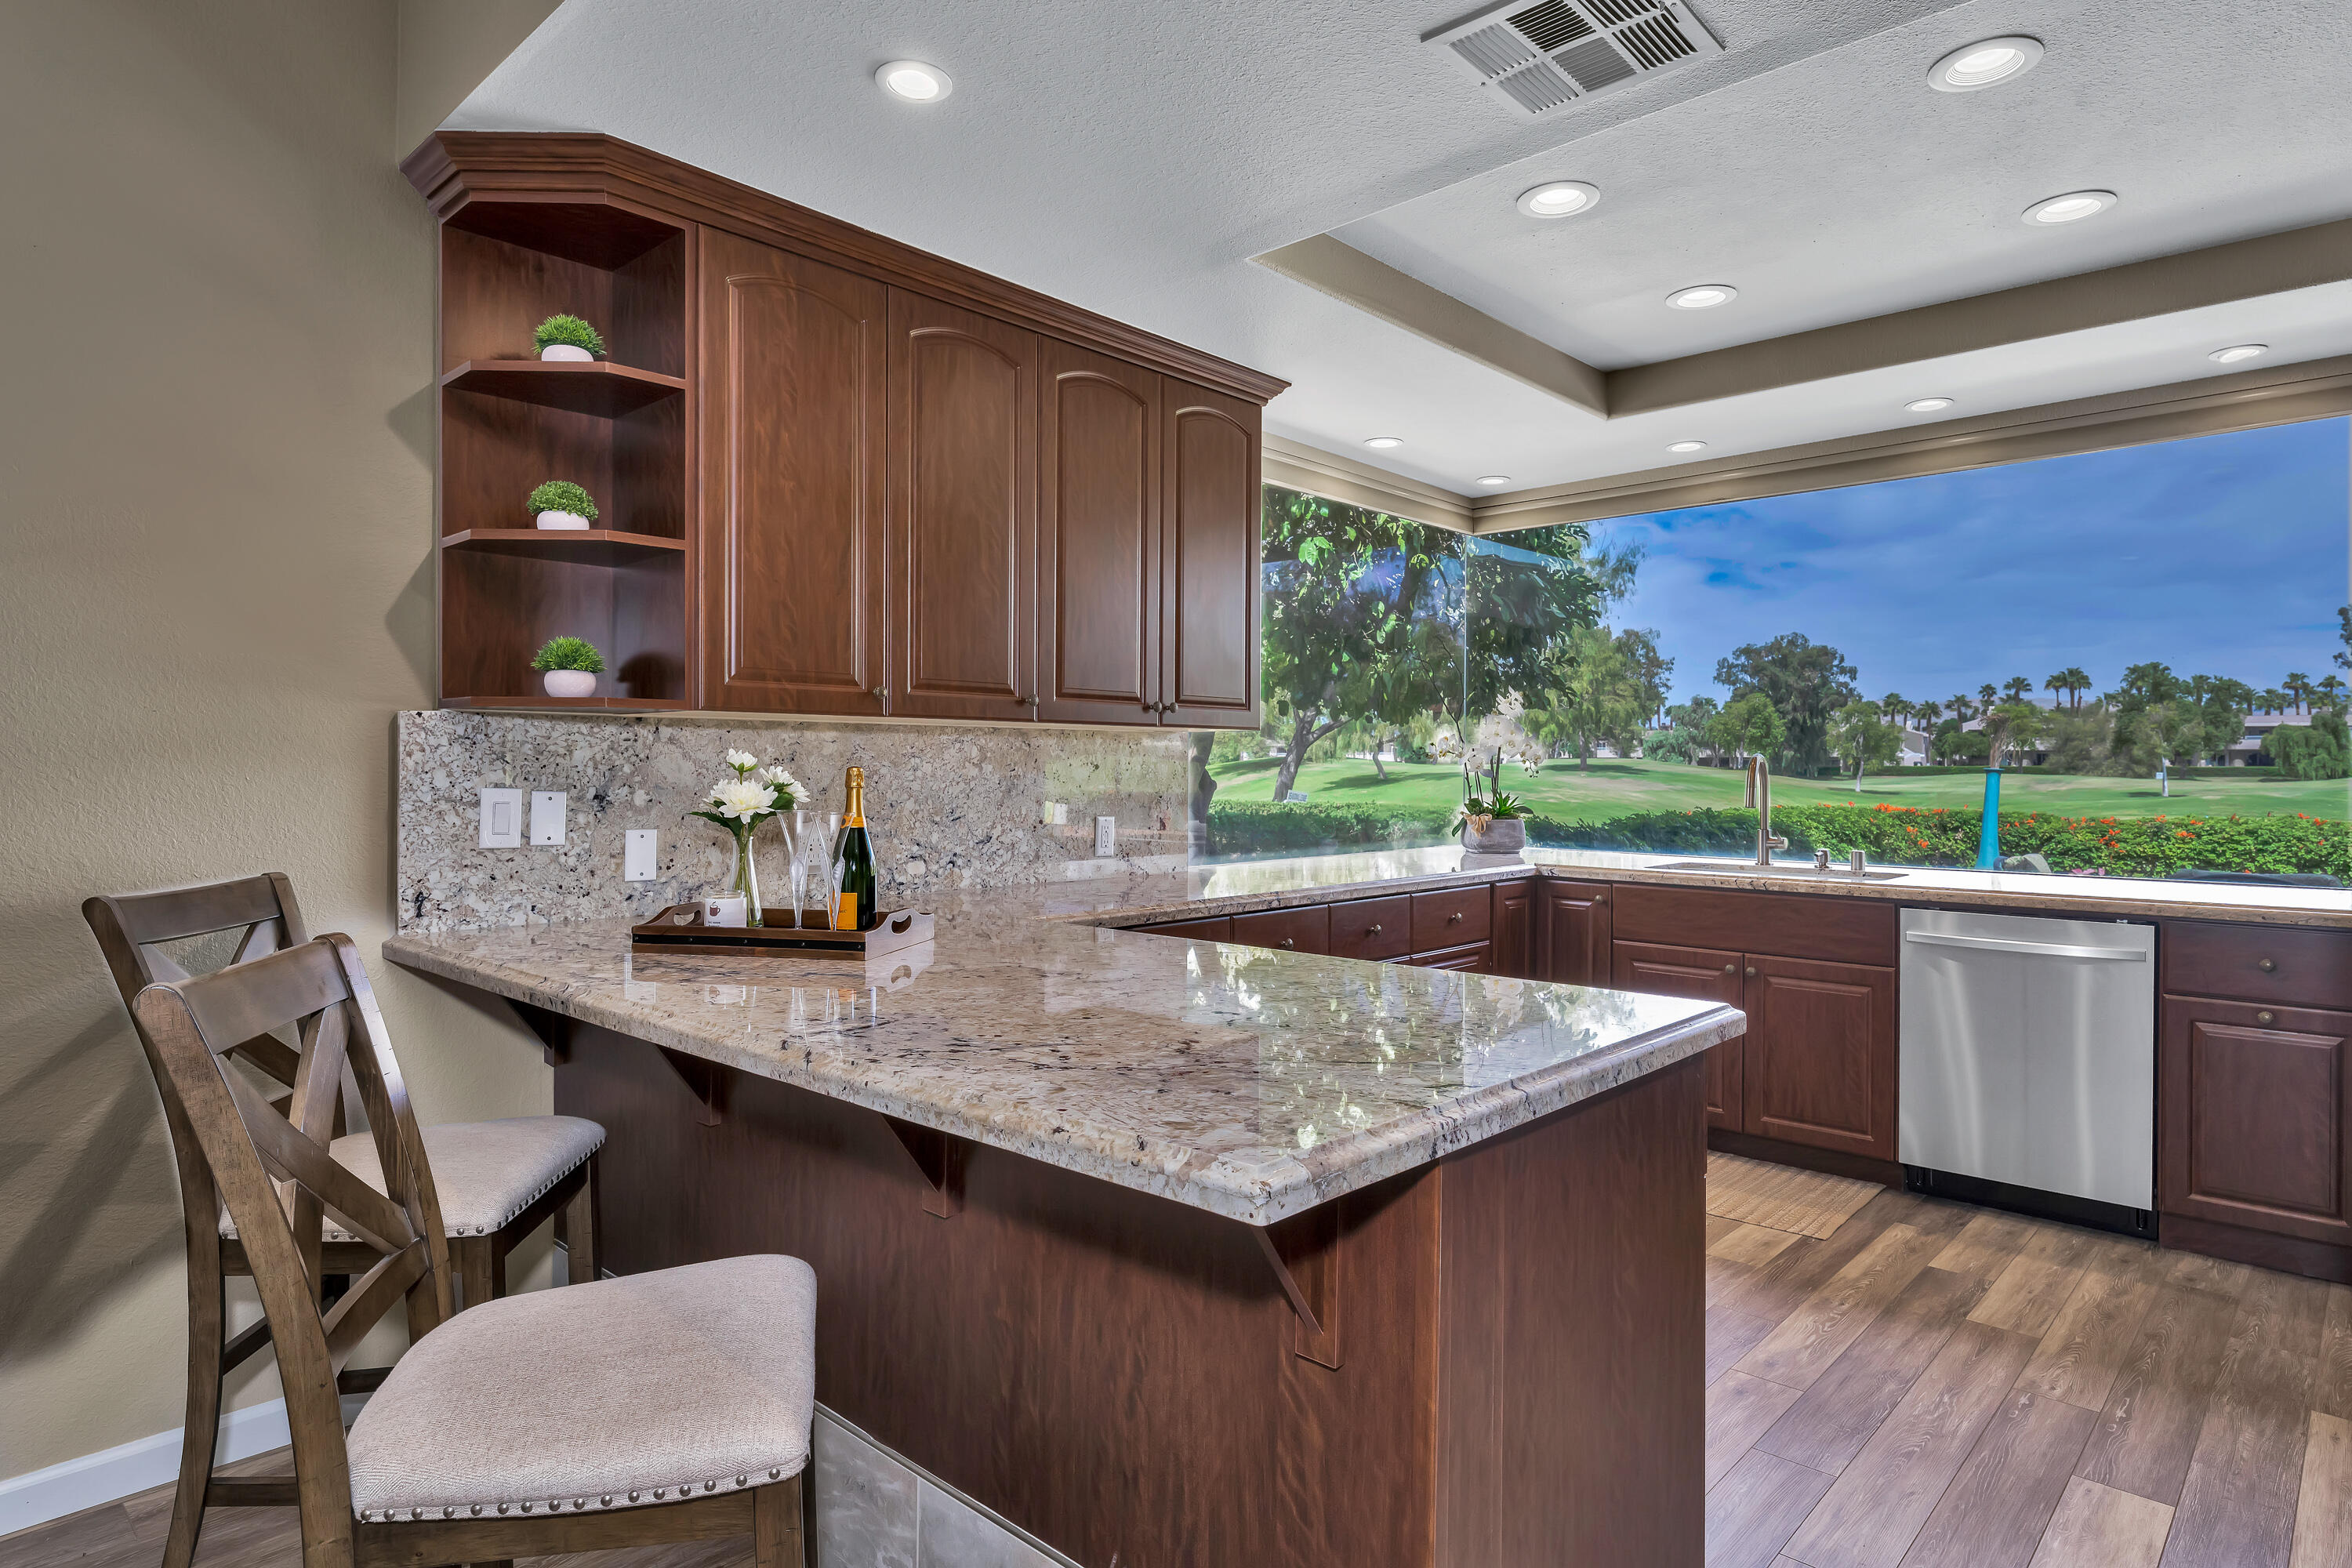 Enjoy Serene Golf Course Views from this designer renovated home in Mission Hills Country Club. This popular single level floor plan is on fee simple land (owned not leased) offering 1,806sf with 3 bedrooms and 2 bathrooms. The luxurious kitchen has granite counters with a matching full height backsplash, beautiful cabinets, new stainless-steel appliances, a breakfast bar and stunning views through the oversized frameless windows. The Great Room offers endless enjoyment with volume ceilings, wet bar, stunning tile fireplace and direct access to the back entertainment patio. Both bathrooms have been completely transformed with modern tile work in the showers, quartz vanity tops and the dual sink master bathroom has an impressive tiled soaking tub. Modern Window Coverings and plantation shutters, gorgeous tile work in showers, lighting fixtures, ceiling fans and upgraded flooring are just some of the new features the current owner has added to this move-in ready home. The rear patio maximizes great views and is sure to provide many enjoyable desert days and nights. There is also a 2-car + golf cart garage convenient for enjoying the country club or adjacent Westin Resort. This is the perfect package to start enjoying the country club lifestyle.